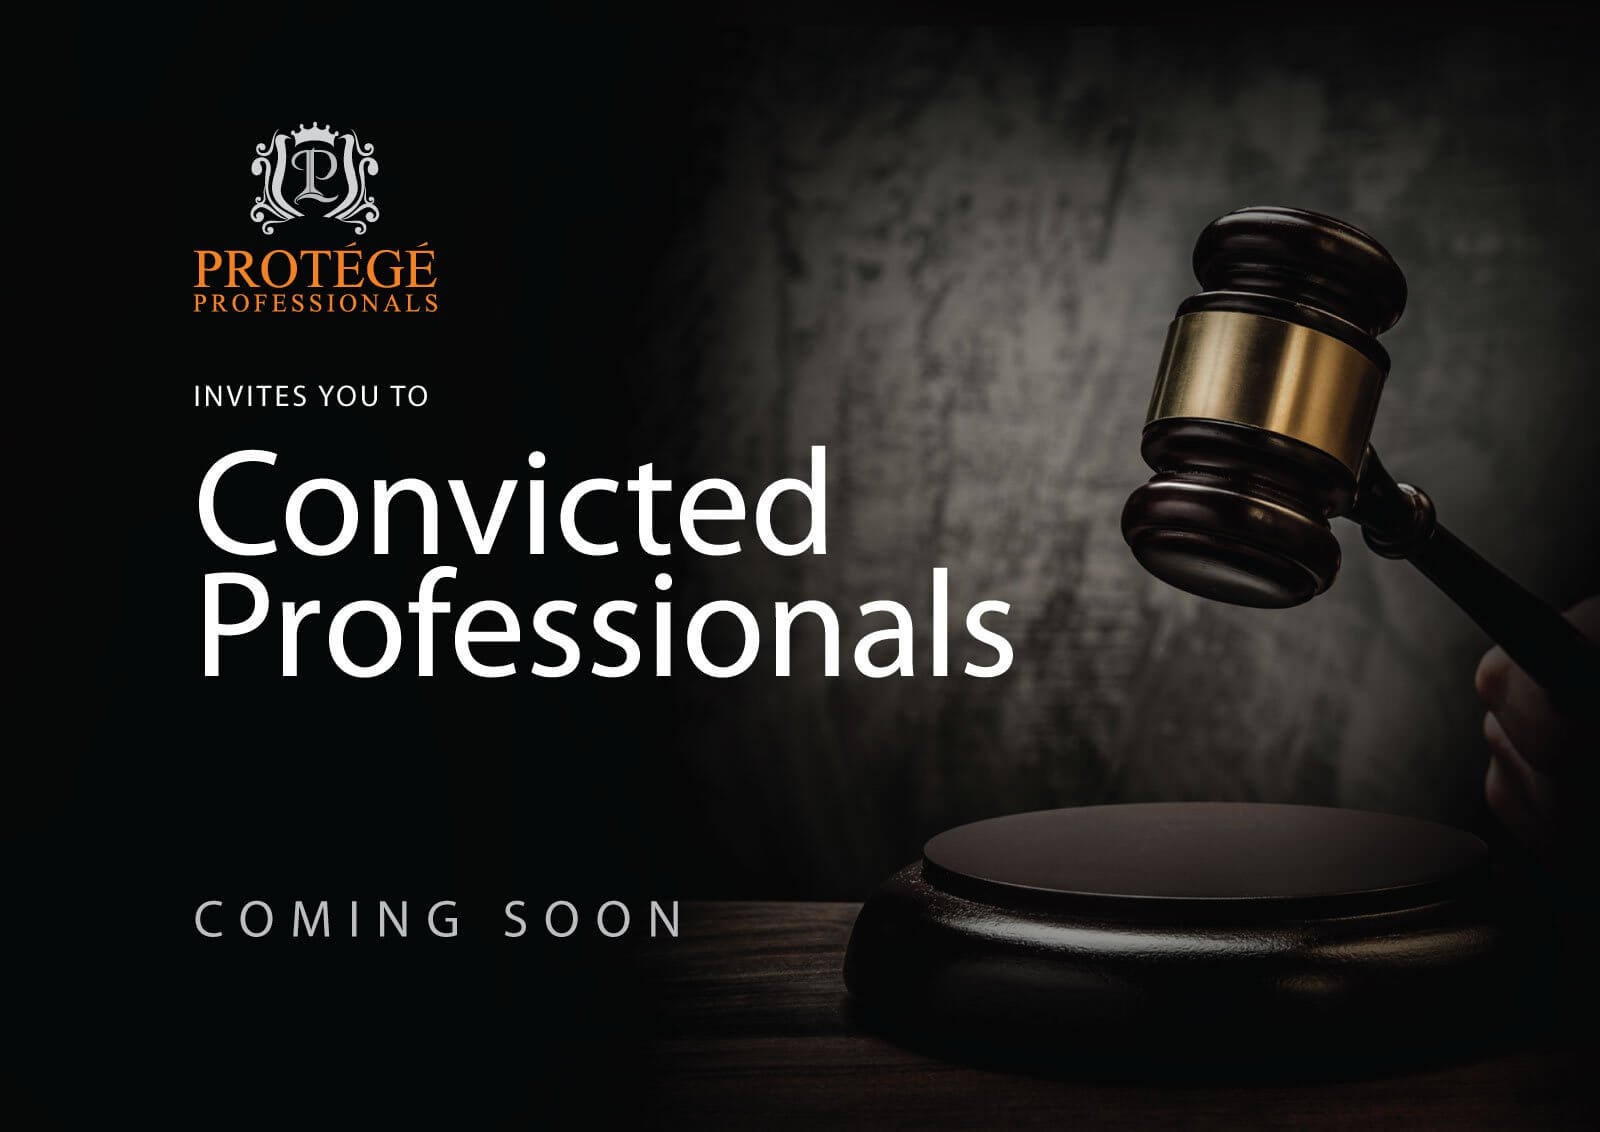 Protégé Convicted Professionals